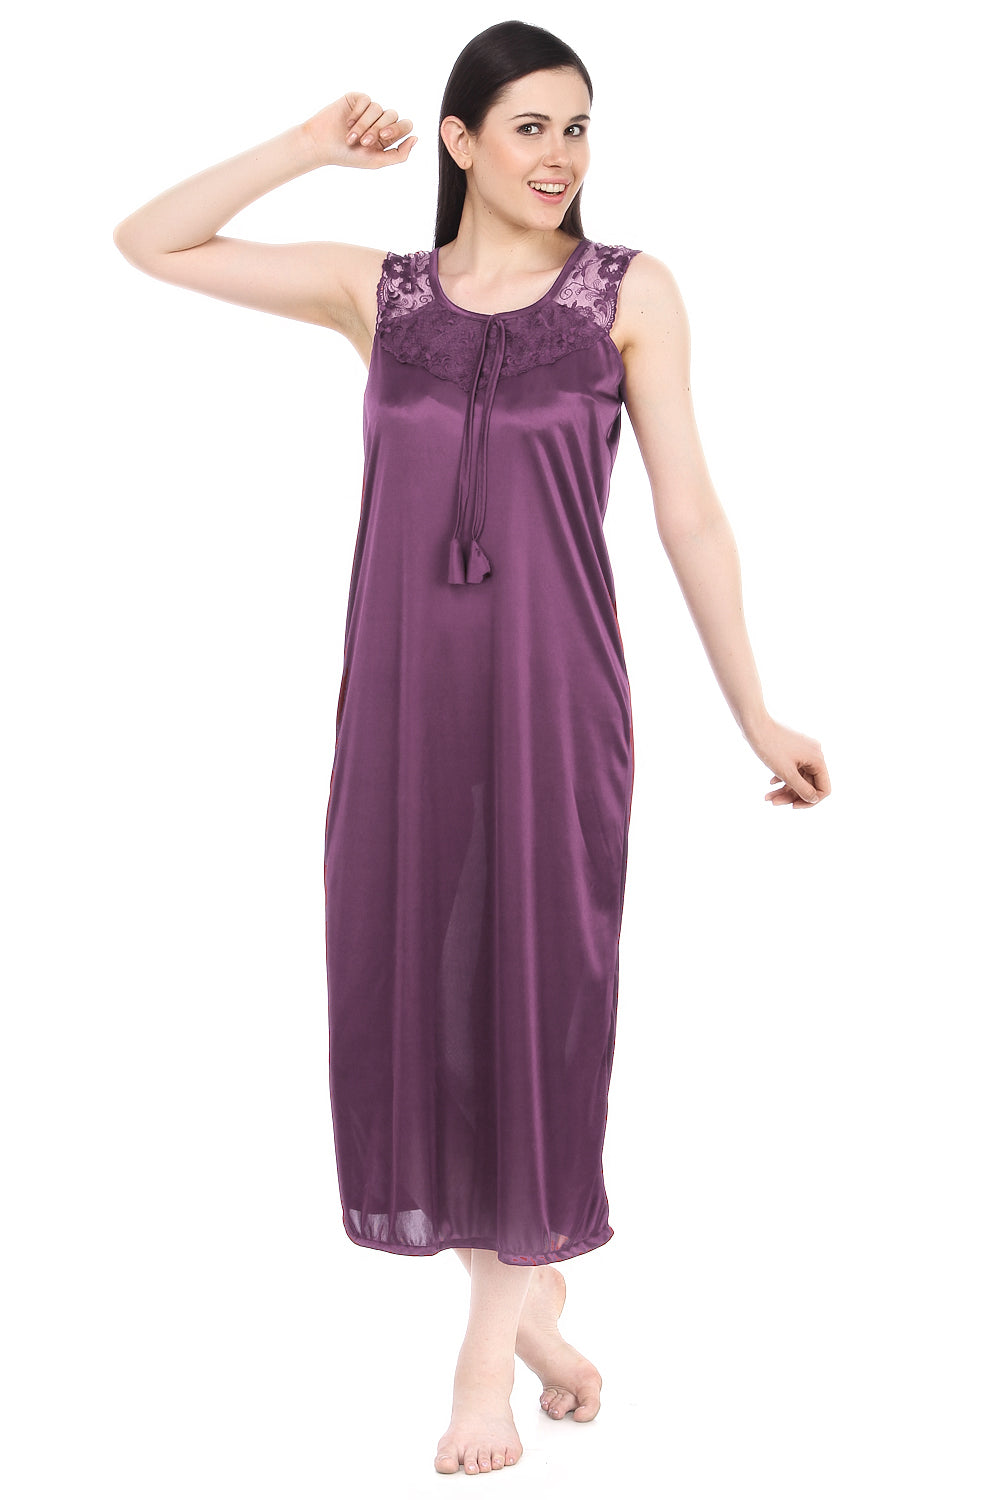 Fasense Solid Satin Long Nighty DP110 - fasensestore